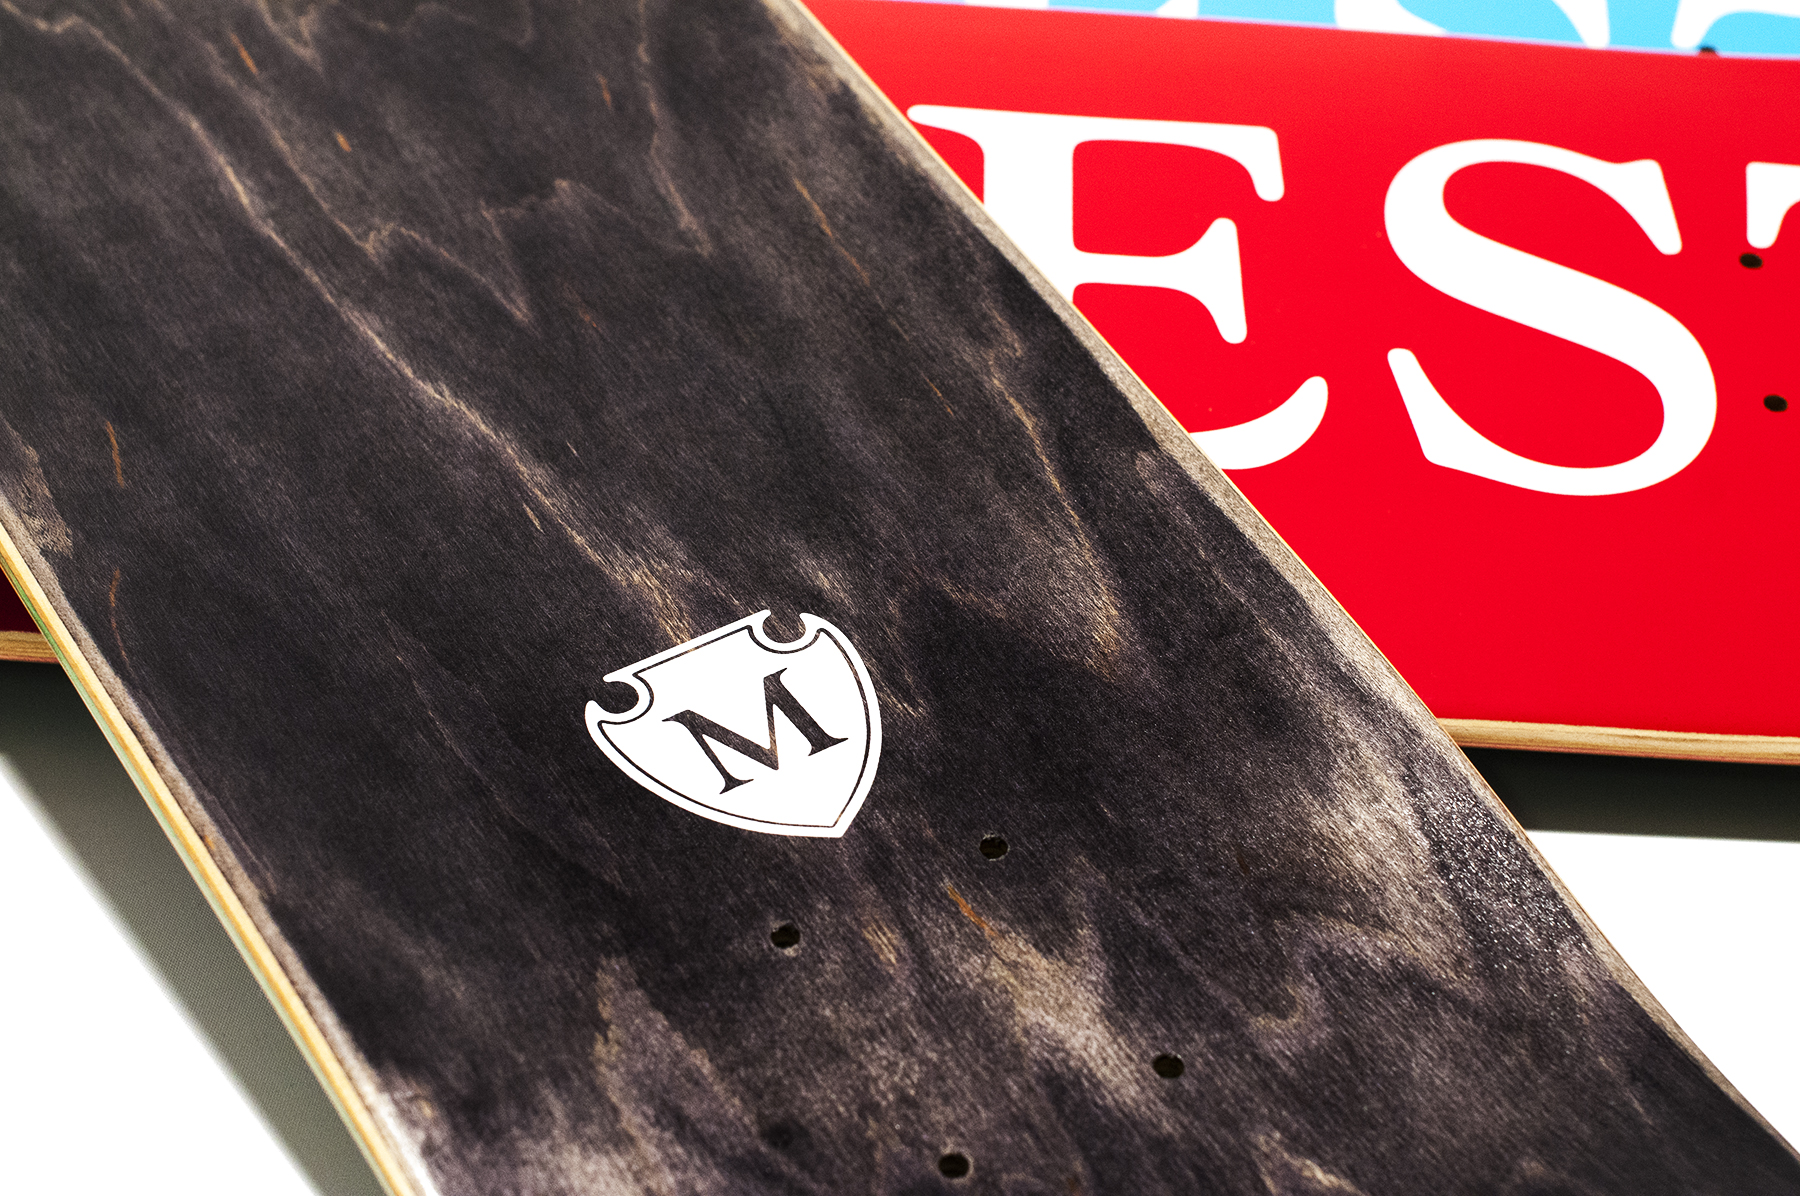 Modest Logo Skateboard Deck: Shield icon top graphic.